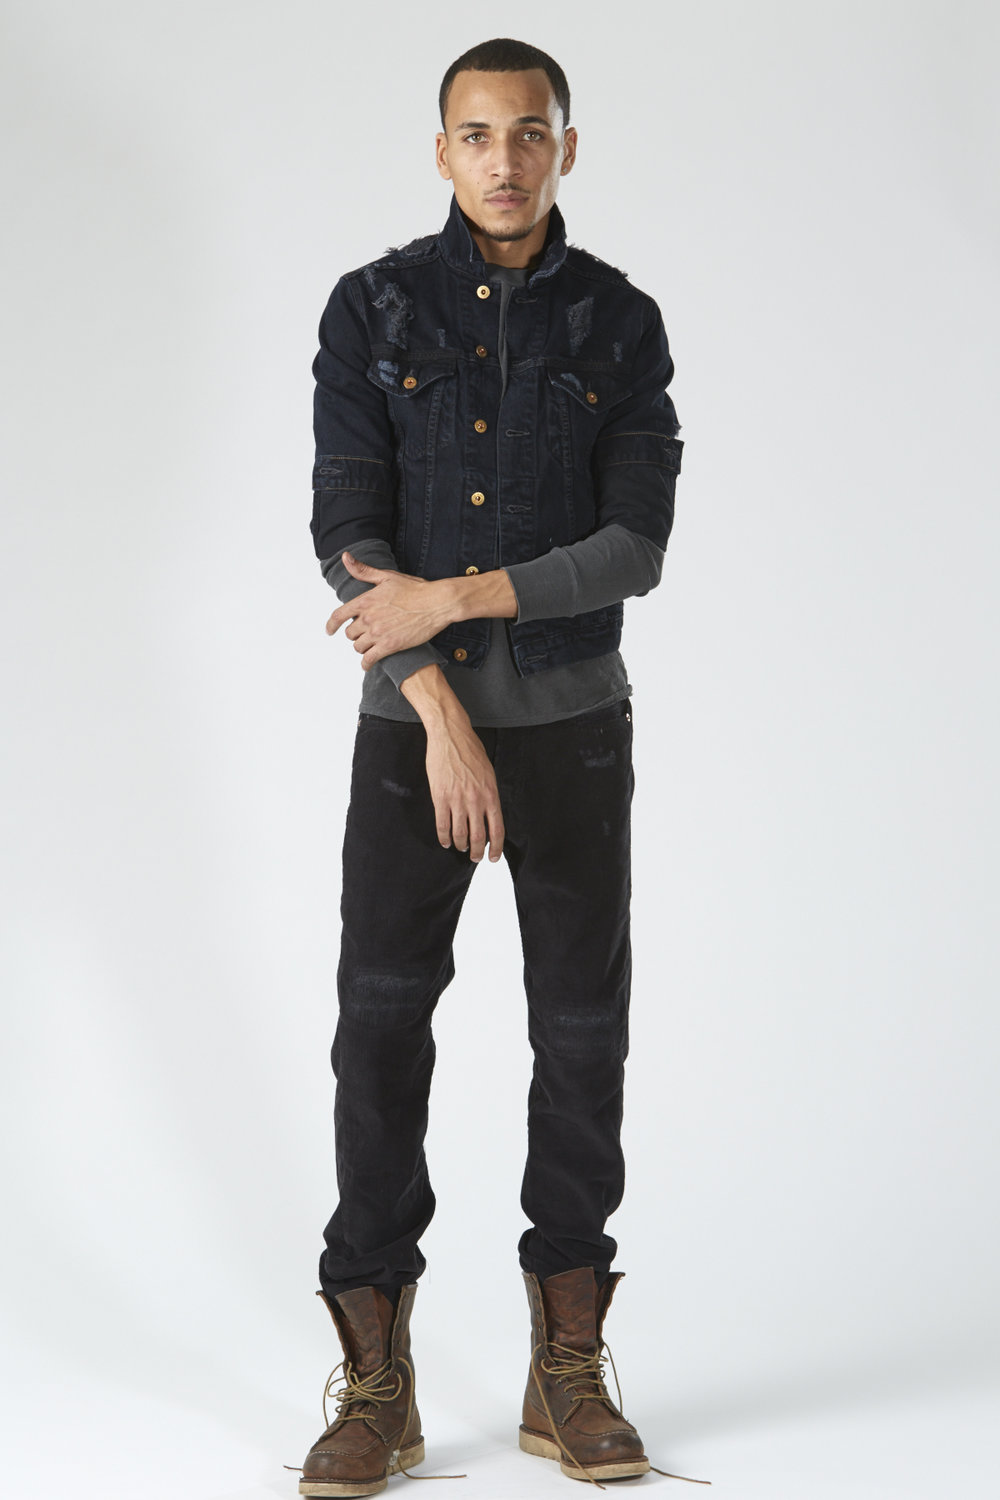 NSF MENS_FALL6863.jpg